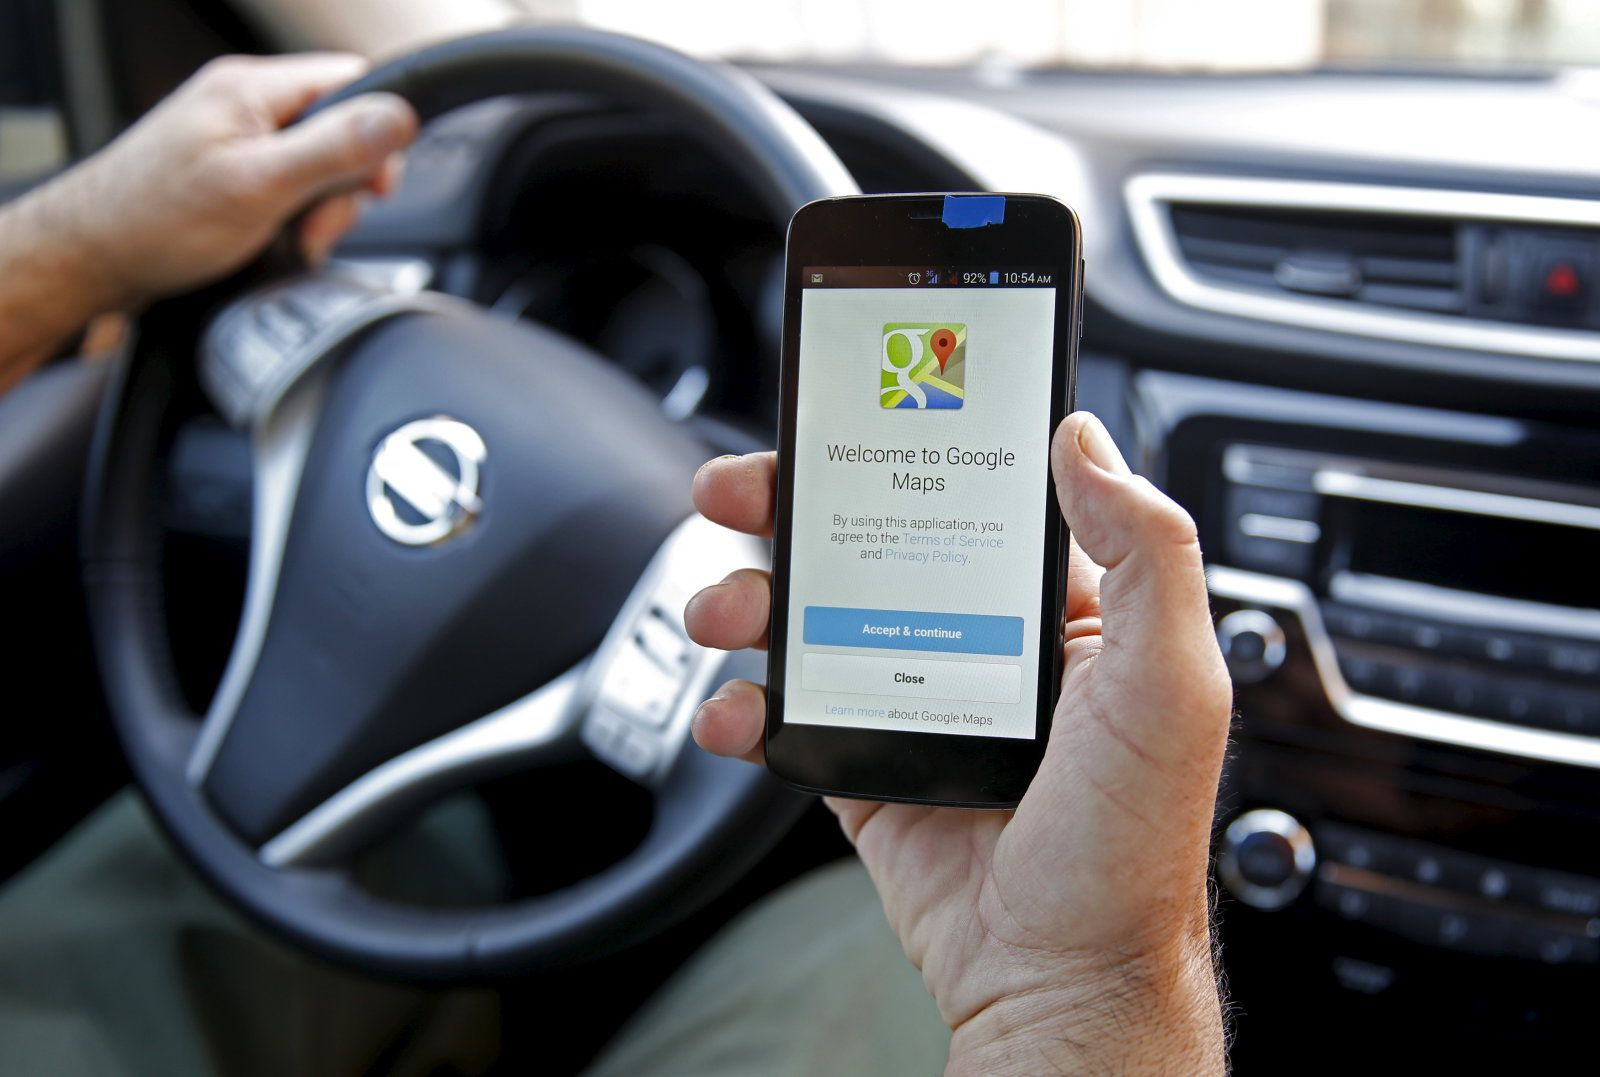 Badezimmer reuter ~ The next google maps update could show how bad the parking is